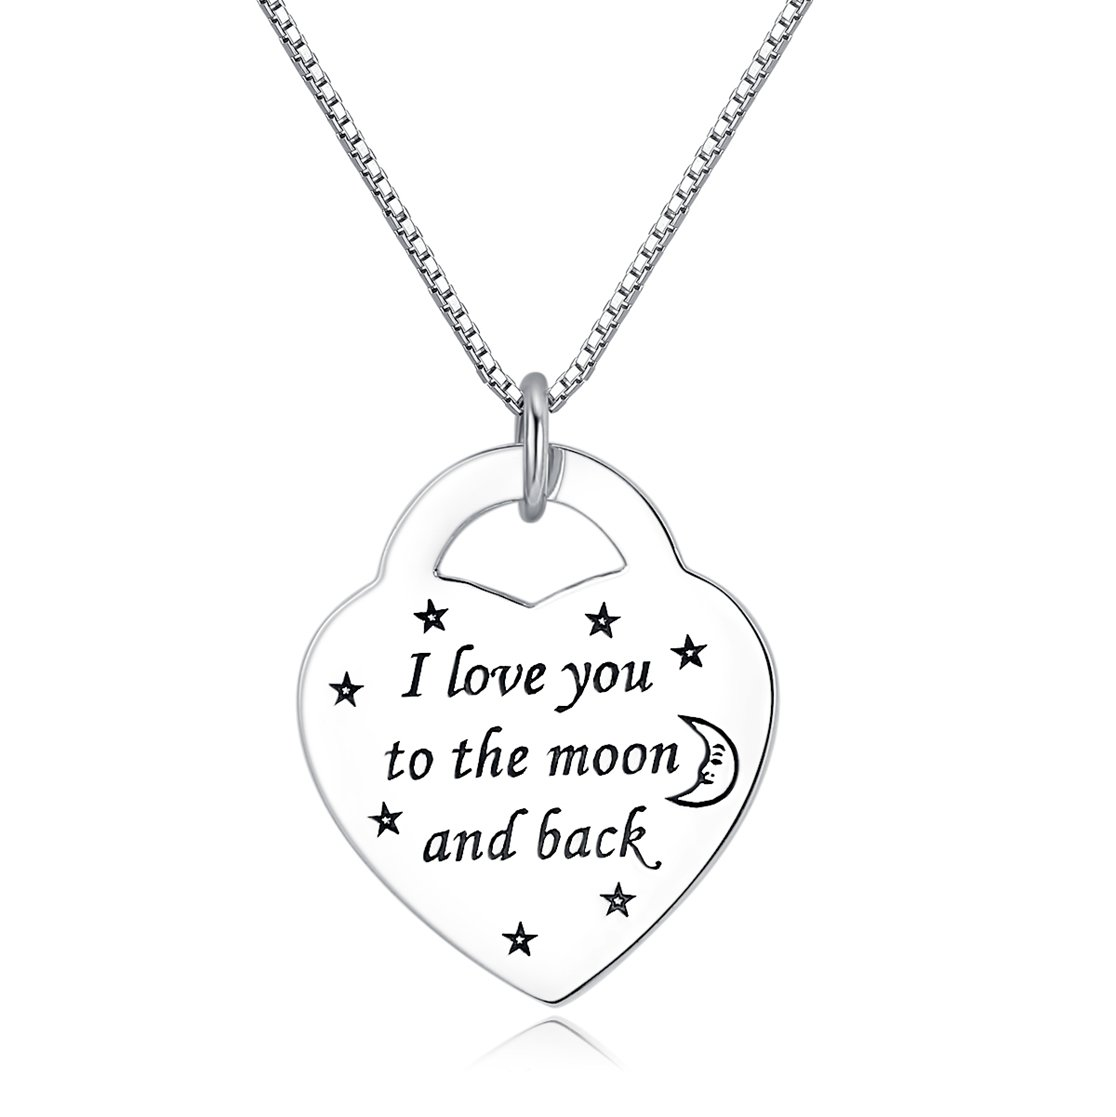 Fine Jewelry Sterling Silver ''I Love You to the Moon and Back'' Charm Pendant Necklace, 18 inches